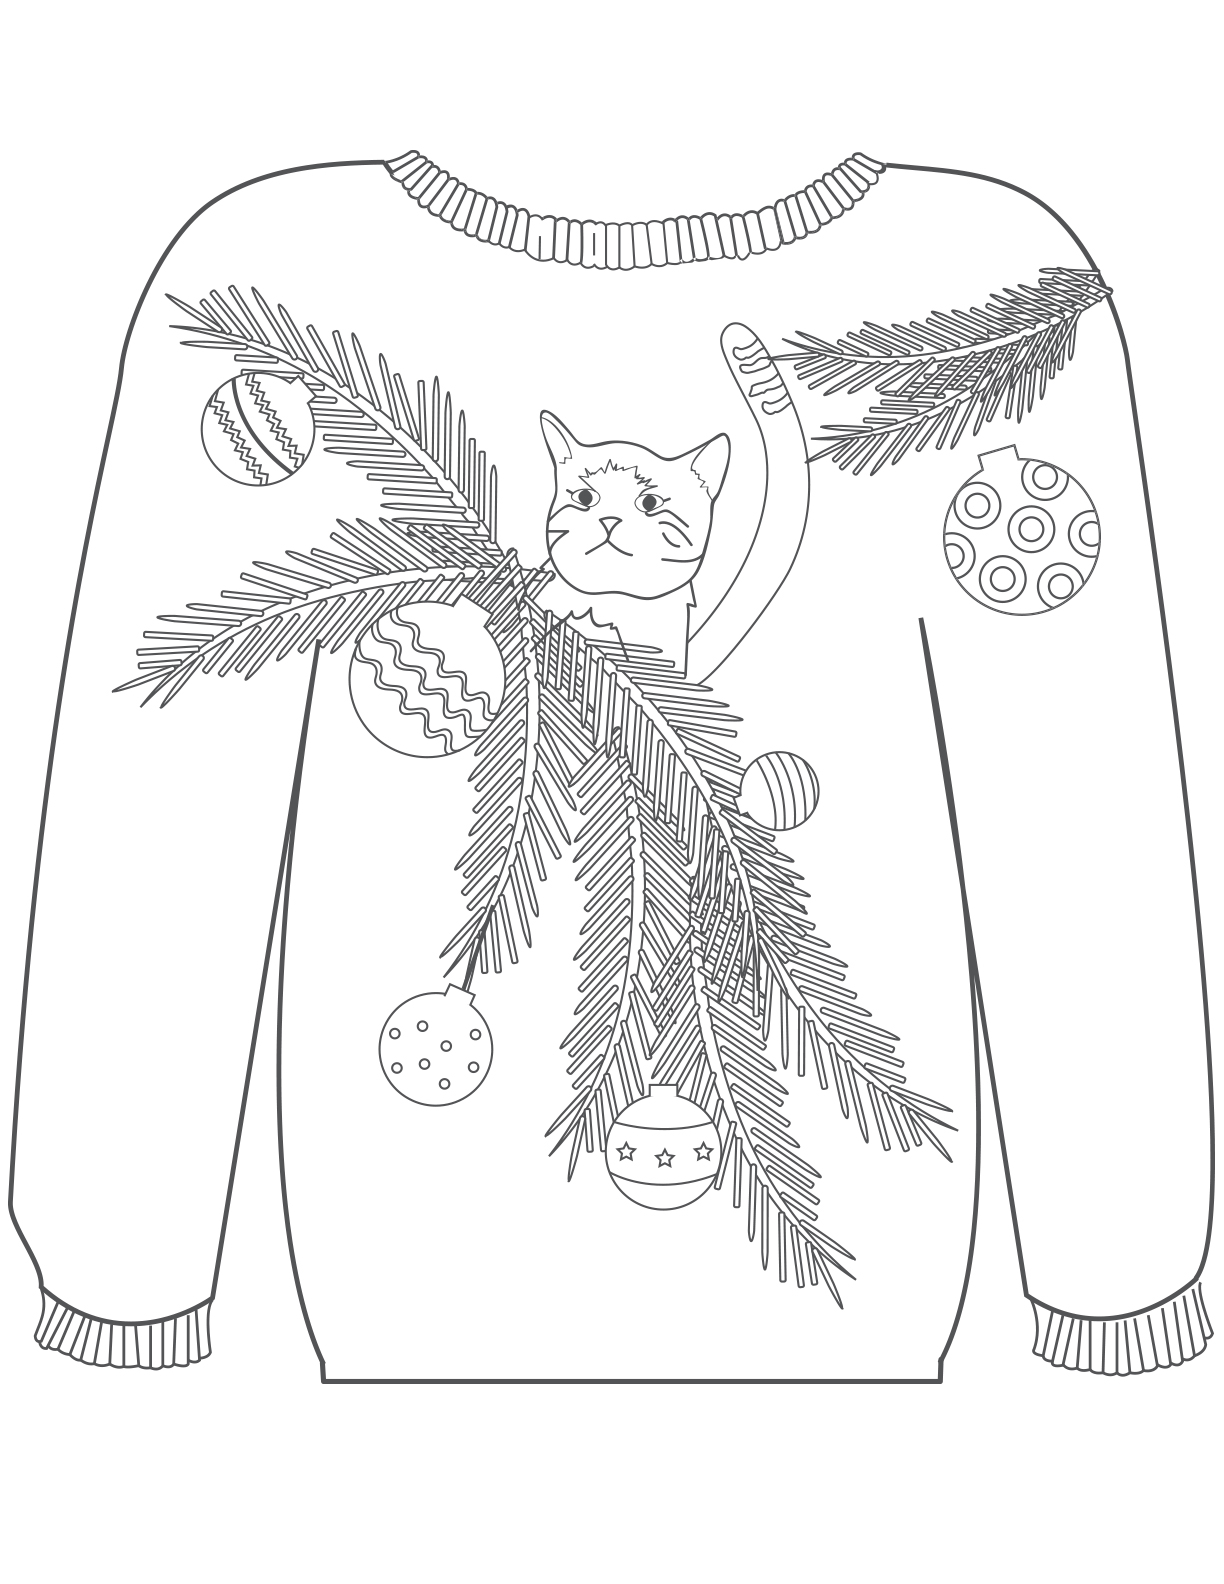 16 Ugly Christmas Sweater Colouring